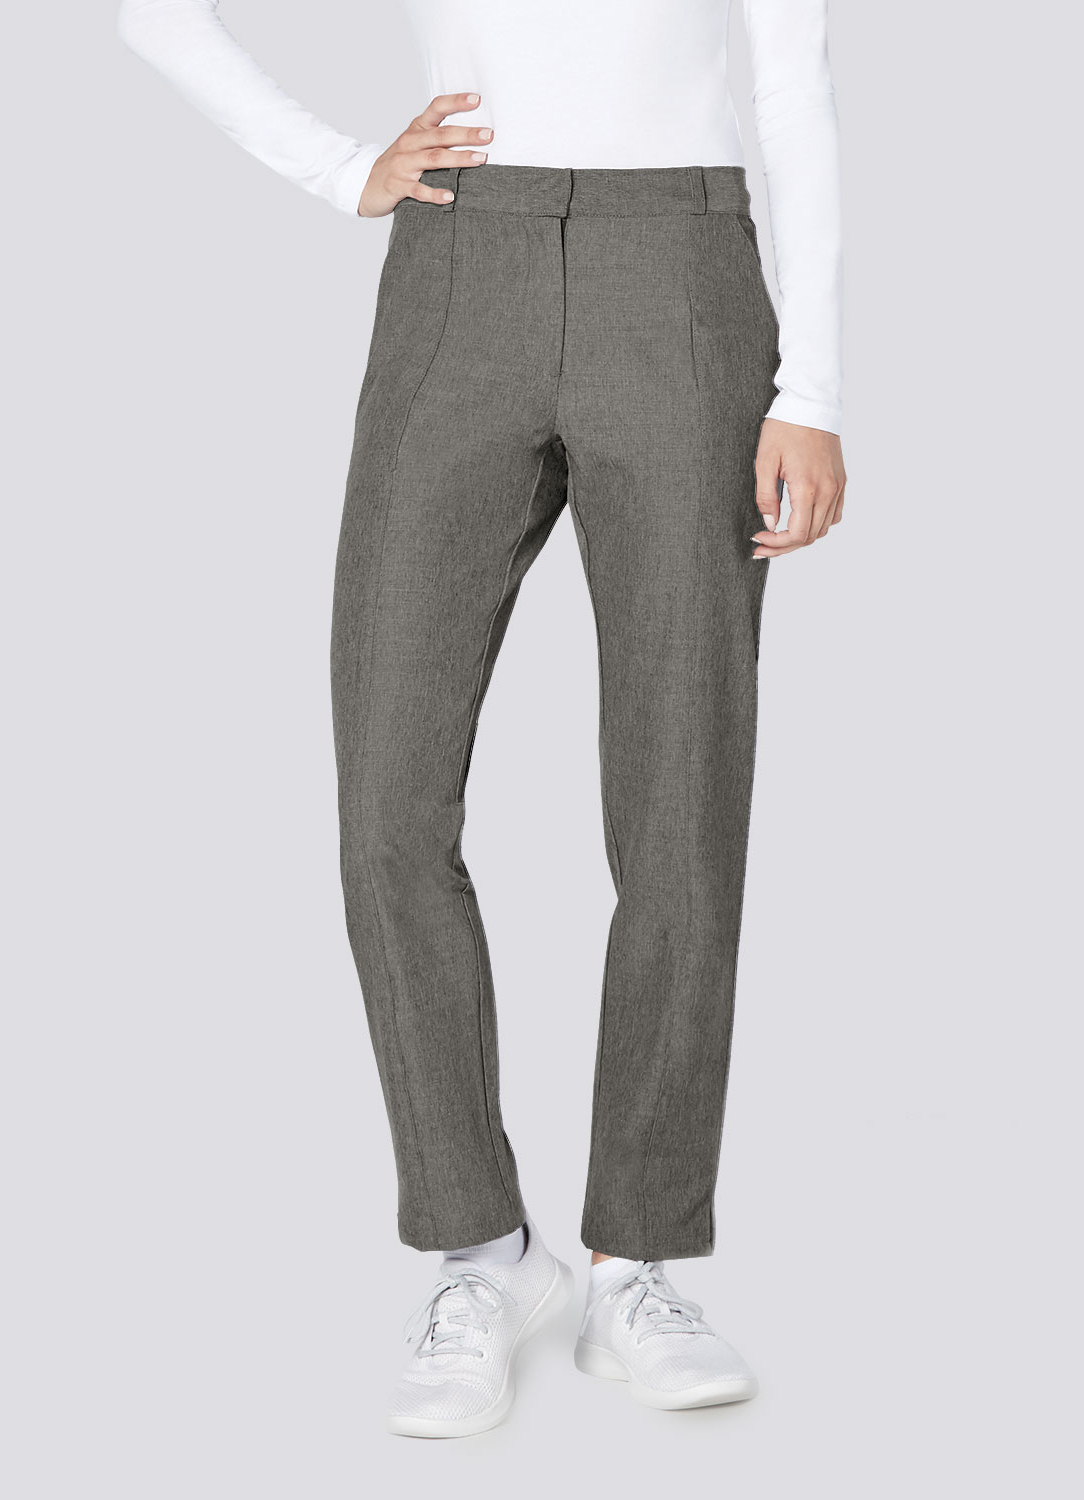 Polished Melange Flat Front Trouser